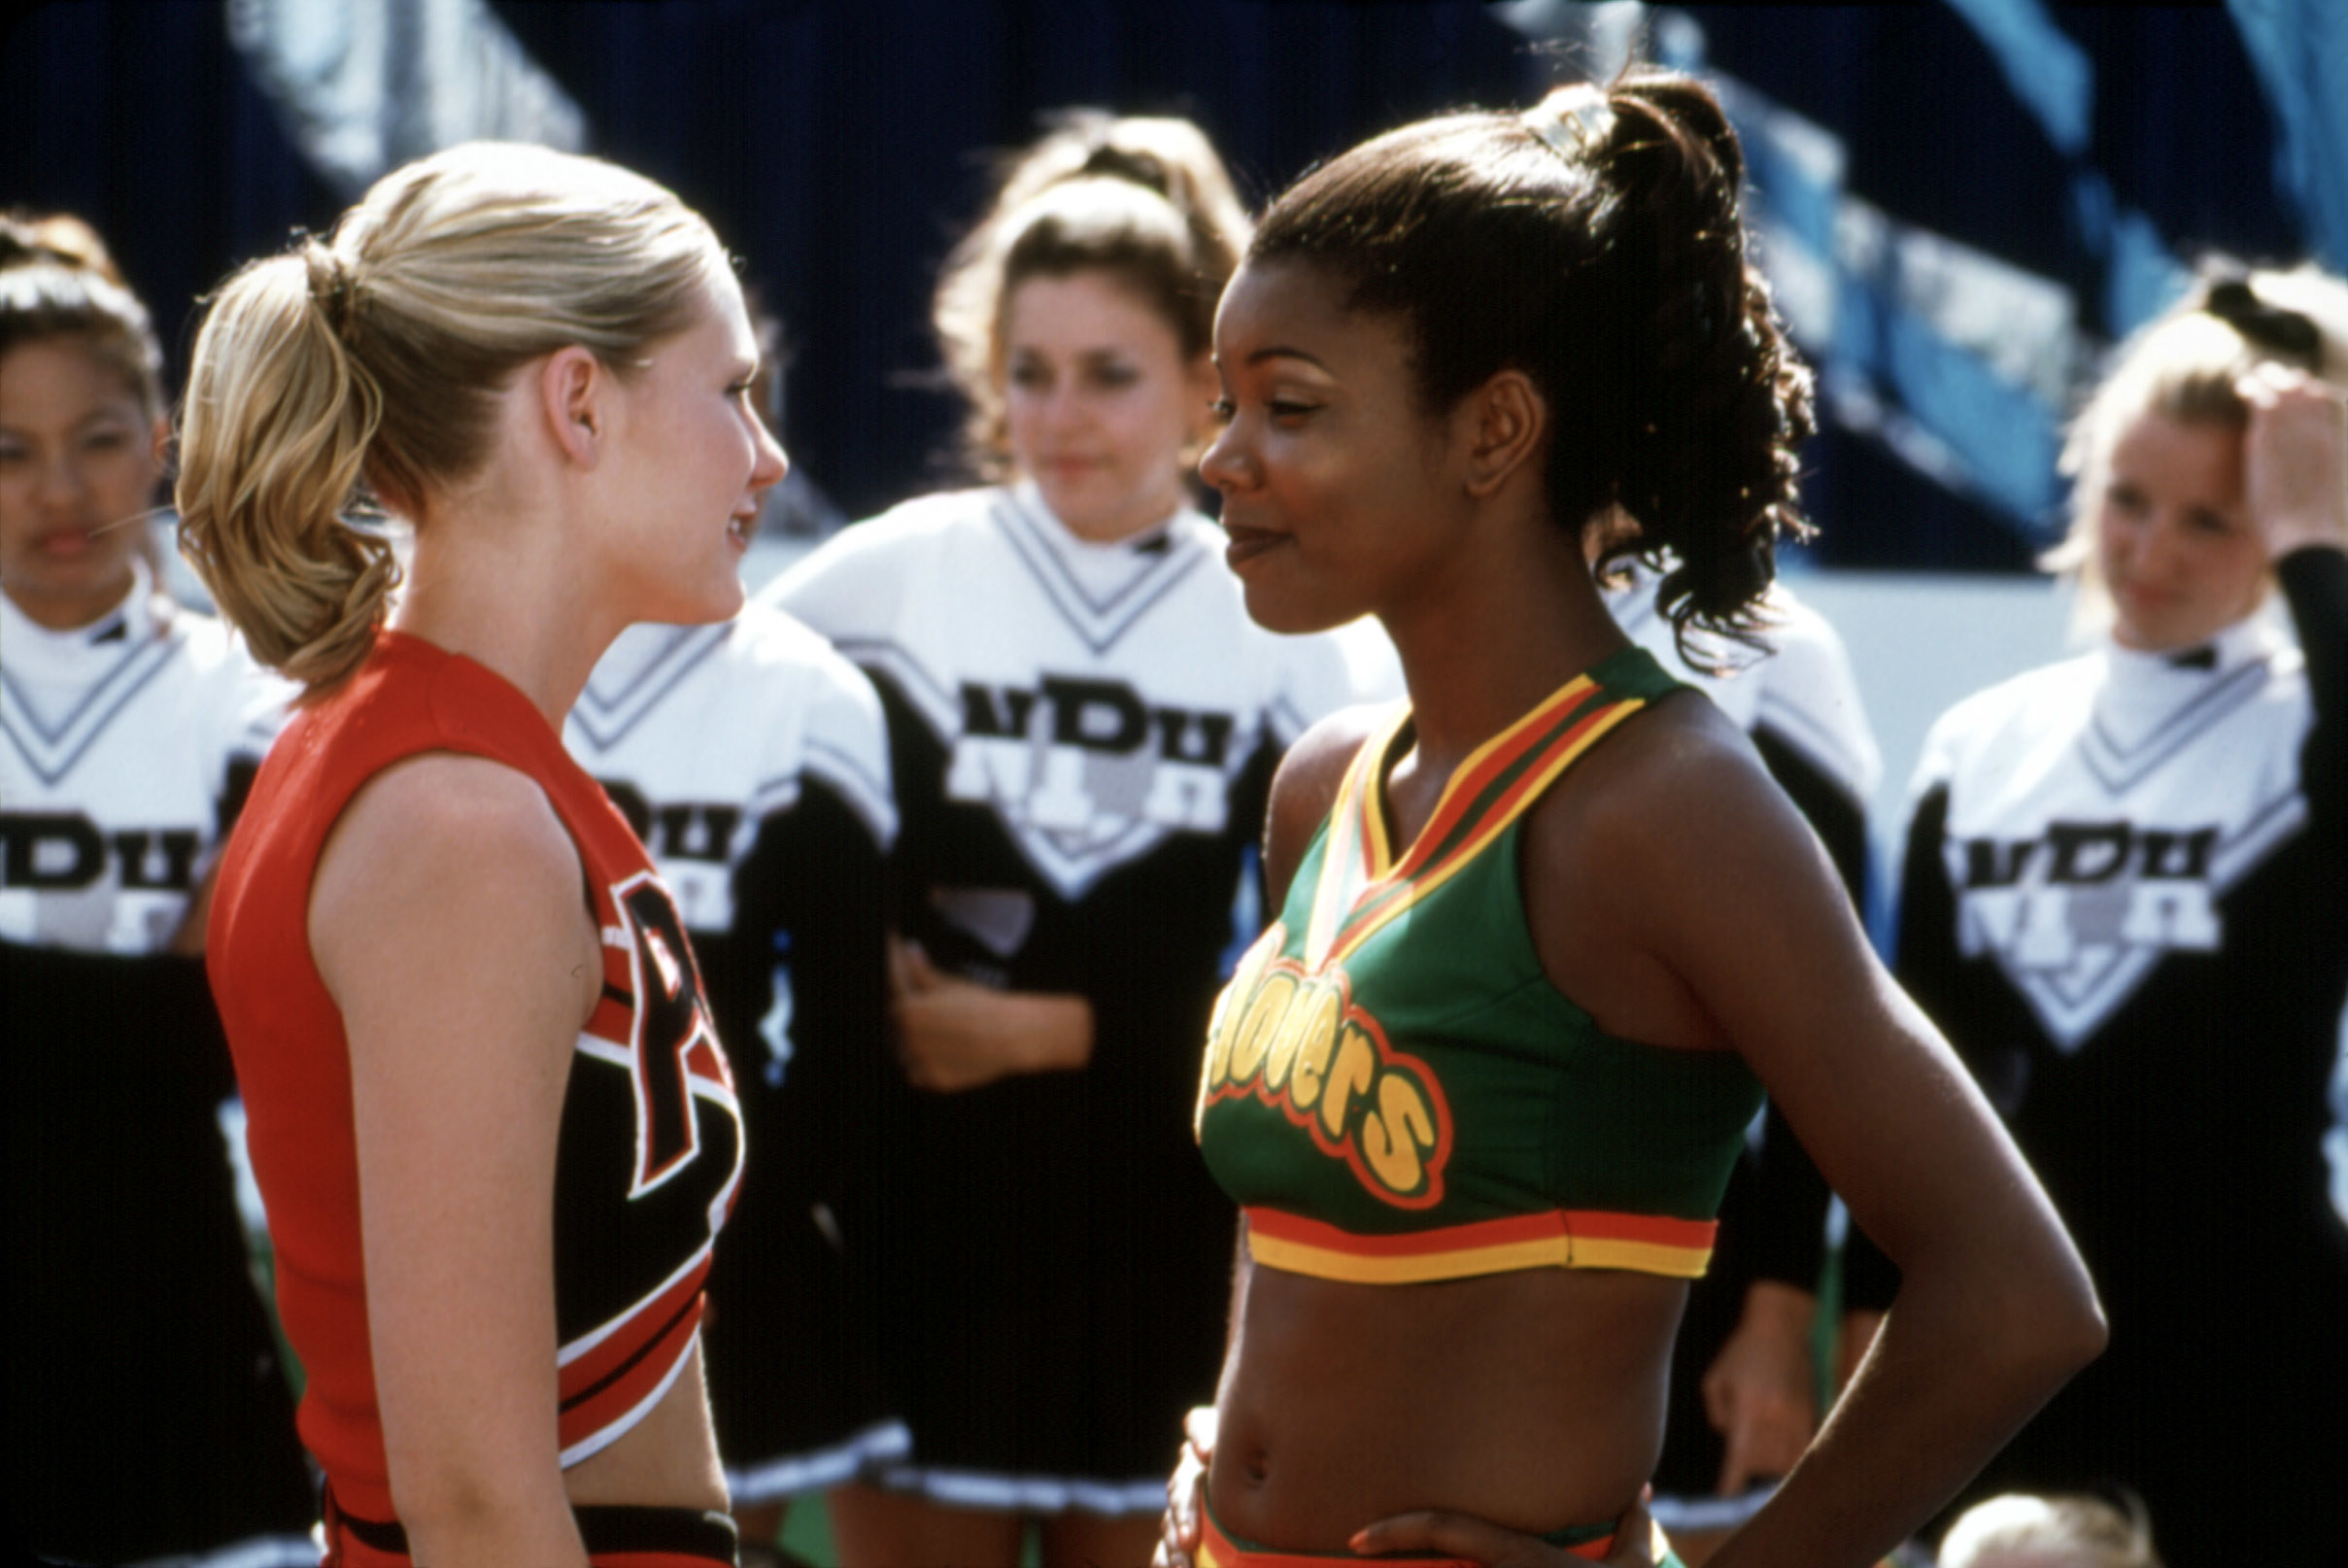 Gabrielle's character stands face to face with an opposing team member